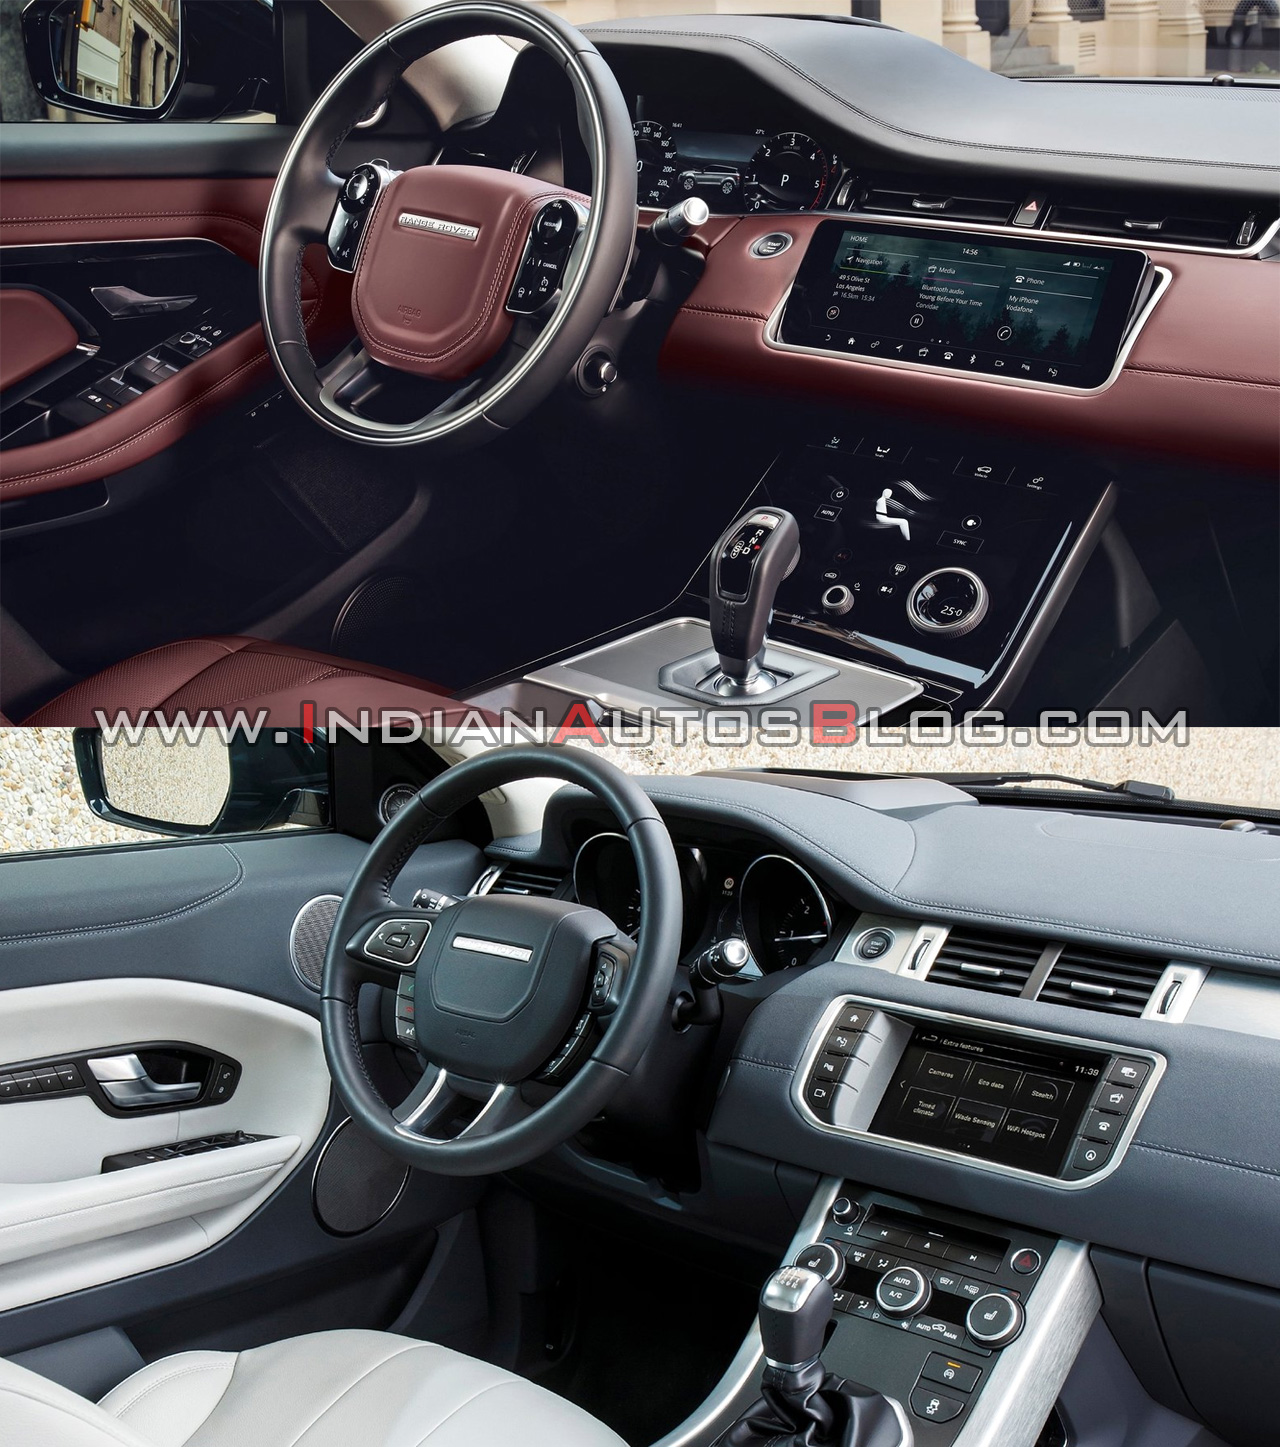 2019 Land Rover Range Rover Suspension: 2019 Range Rover Evoque Vs. 2015 Range Rover Evoque